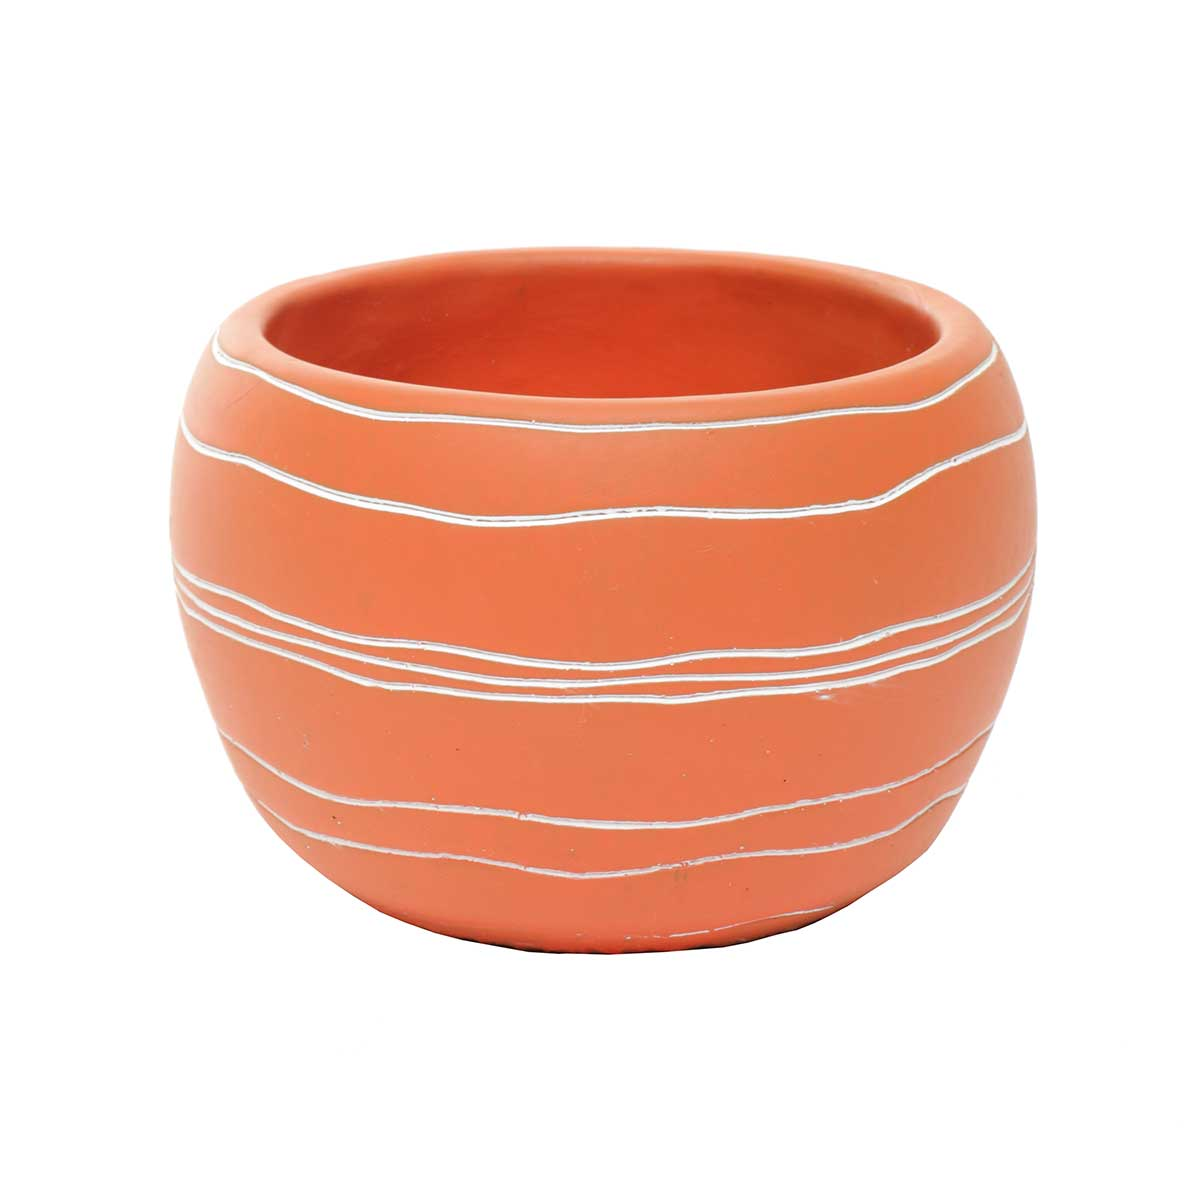 "RETRO CHIC POT 5""X4"" CORAL"